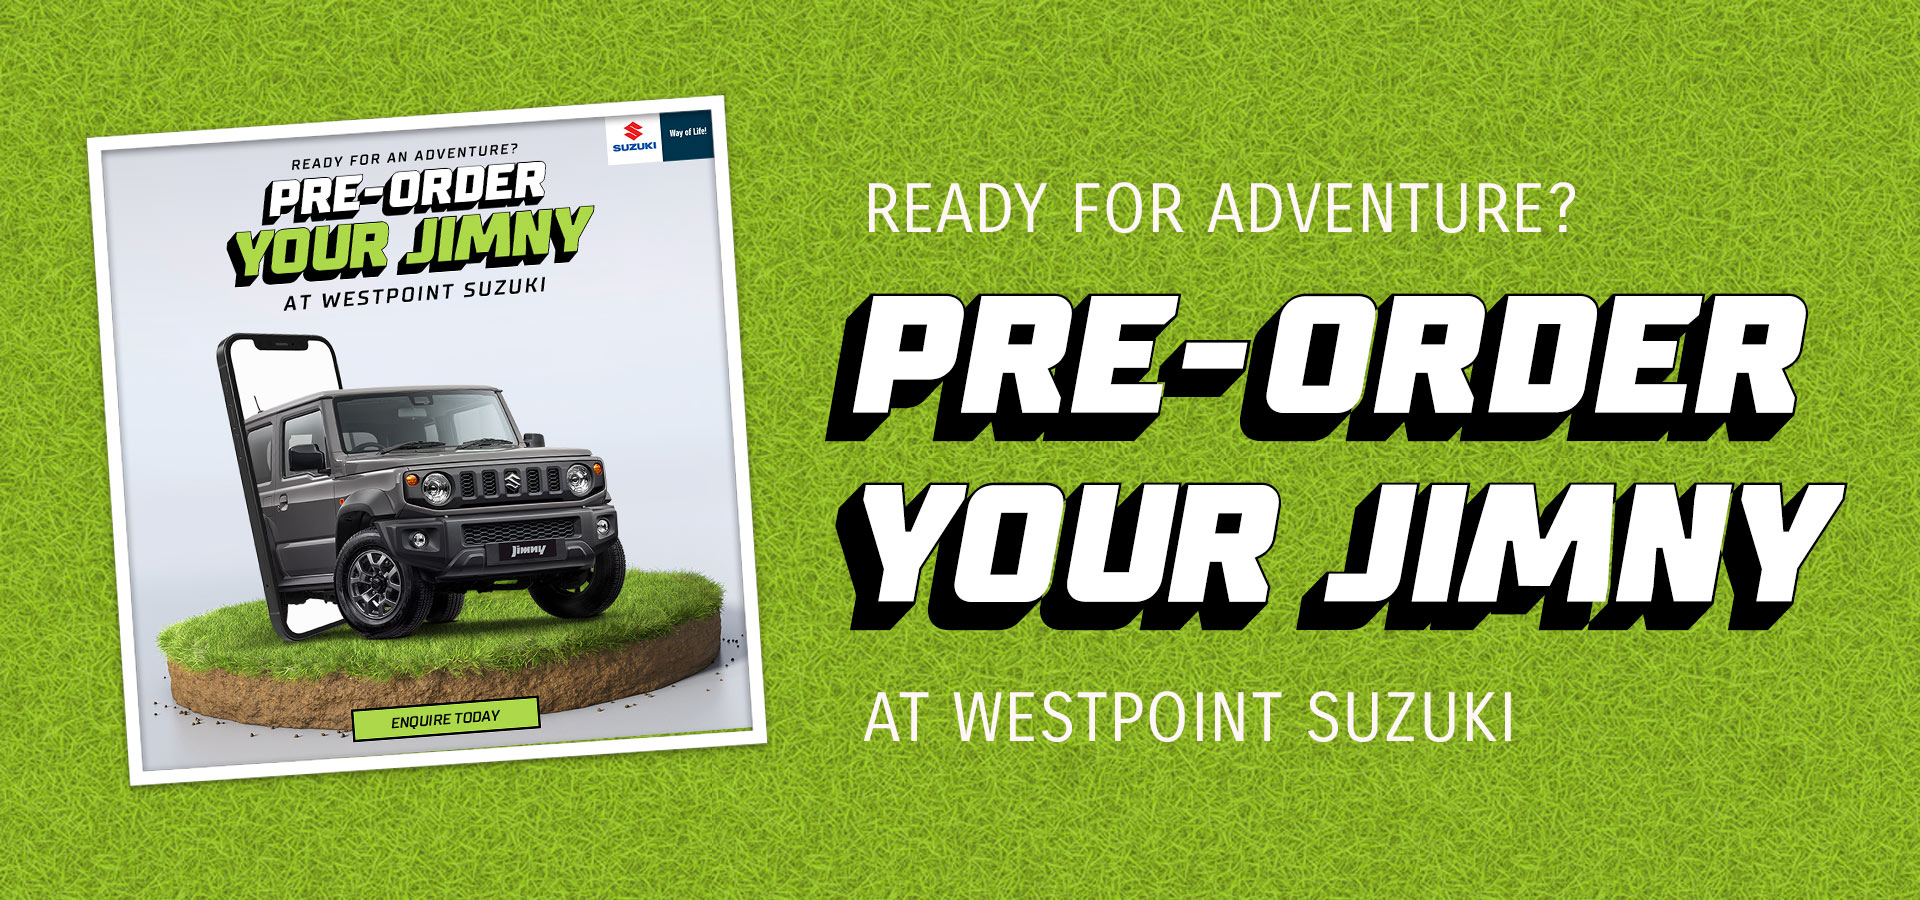 Pre-Order Your Jimny